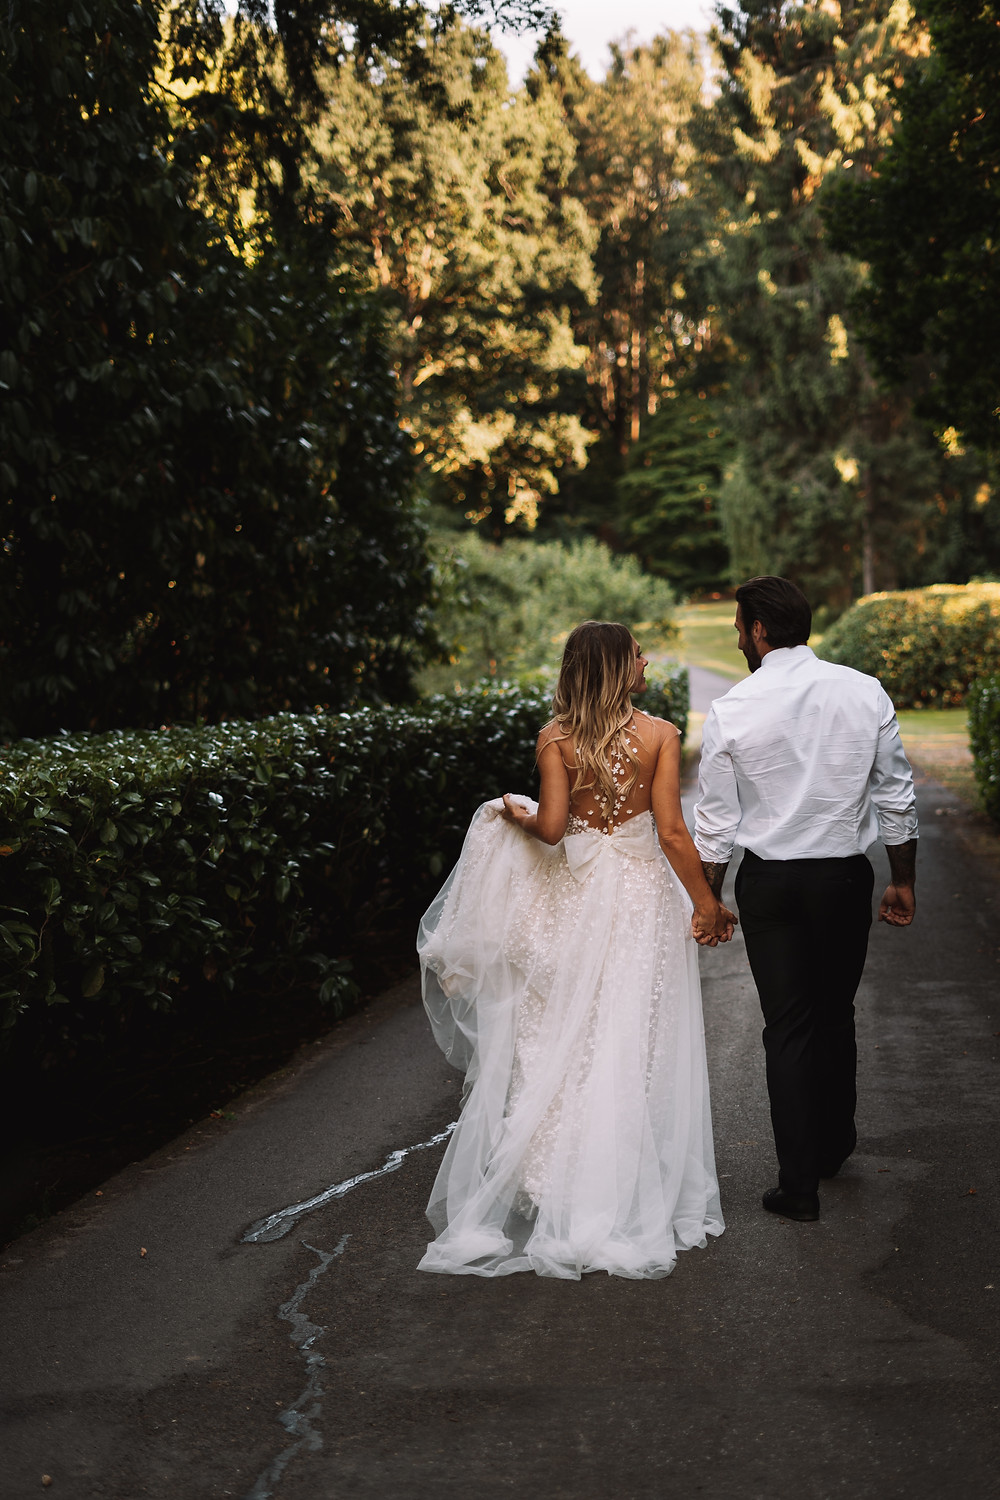 Bride & groom holding hands as they walk towards trees